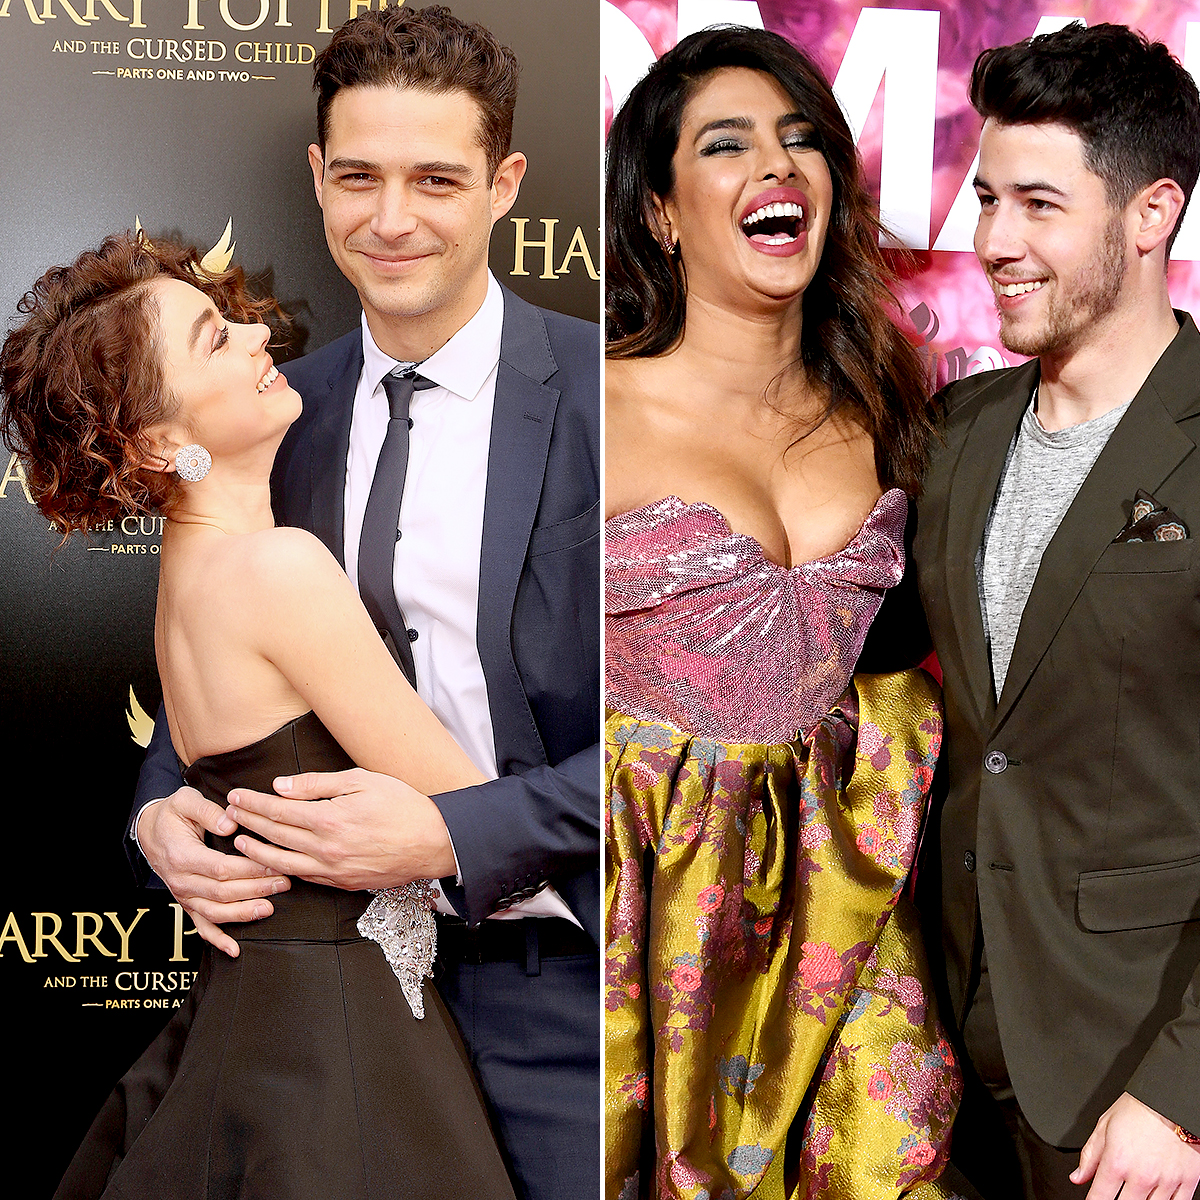 "couples-that-met-on-social-media - NEW YORK, NY – APRIL 22: Sarah Hyland and boyfriend Wells Adams pose at ""Harry Potter and The Cursed Child parts 1 & 2"" on Broadway opening night at The Lyric Theatre on April 22, 2018 in New York City. (Photo by Bruce Glikas/Bruce Glikas/FilmMagic)"